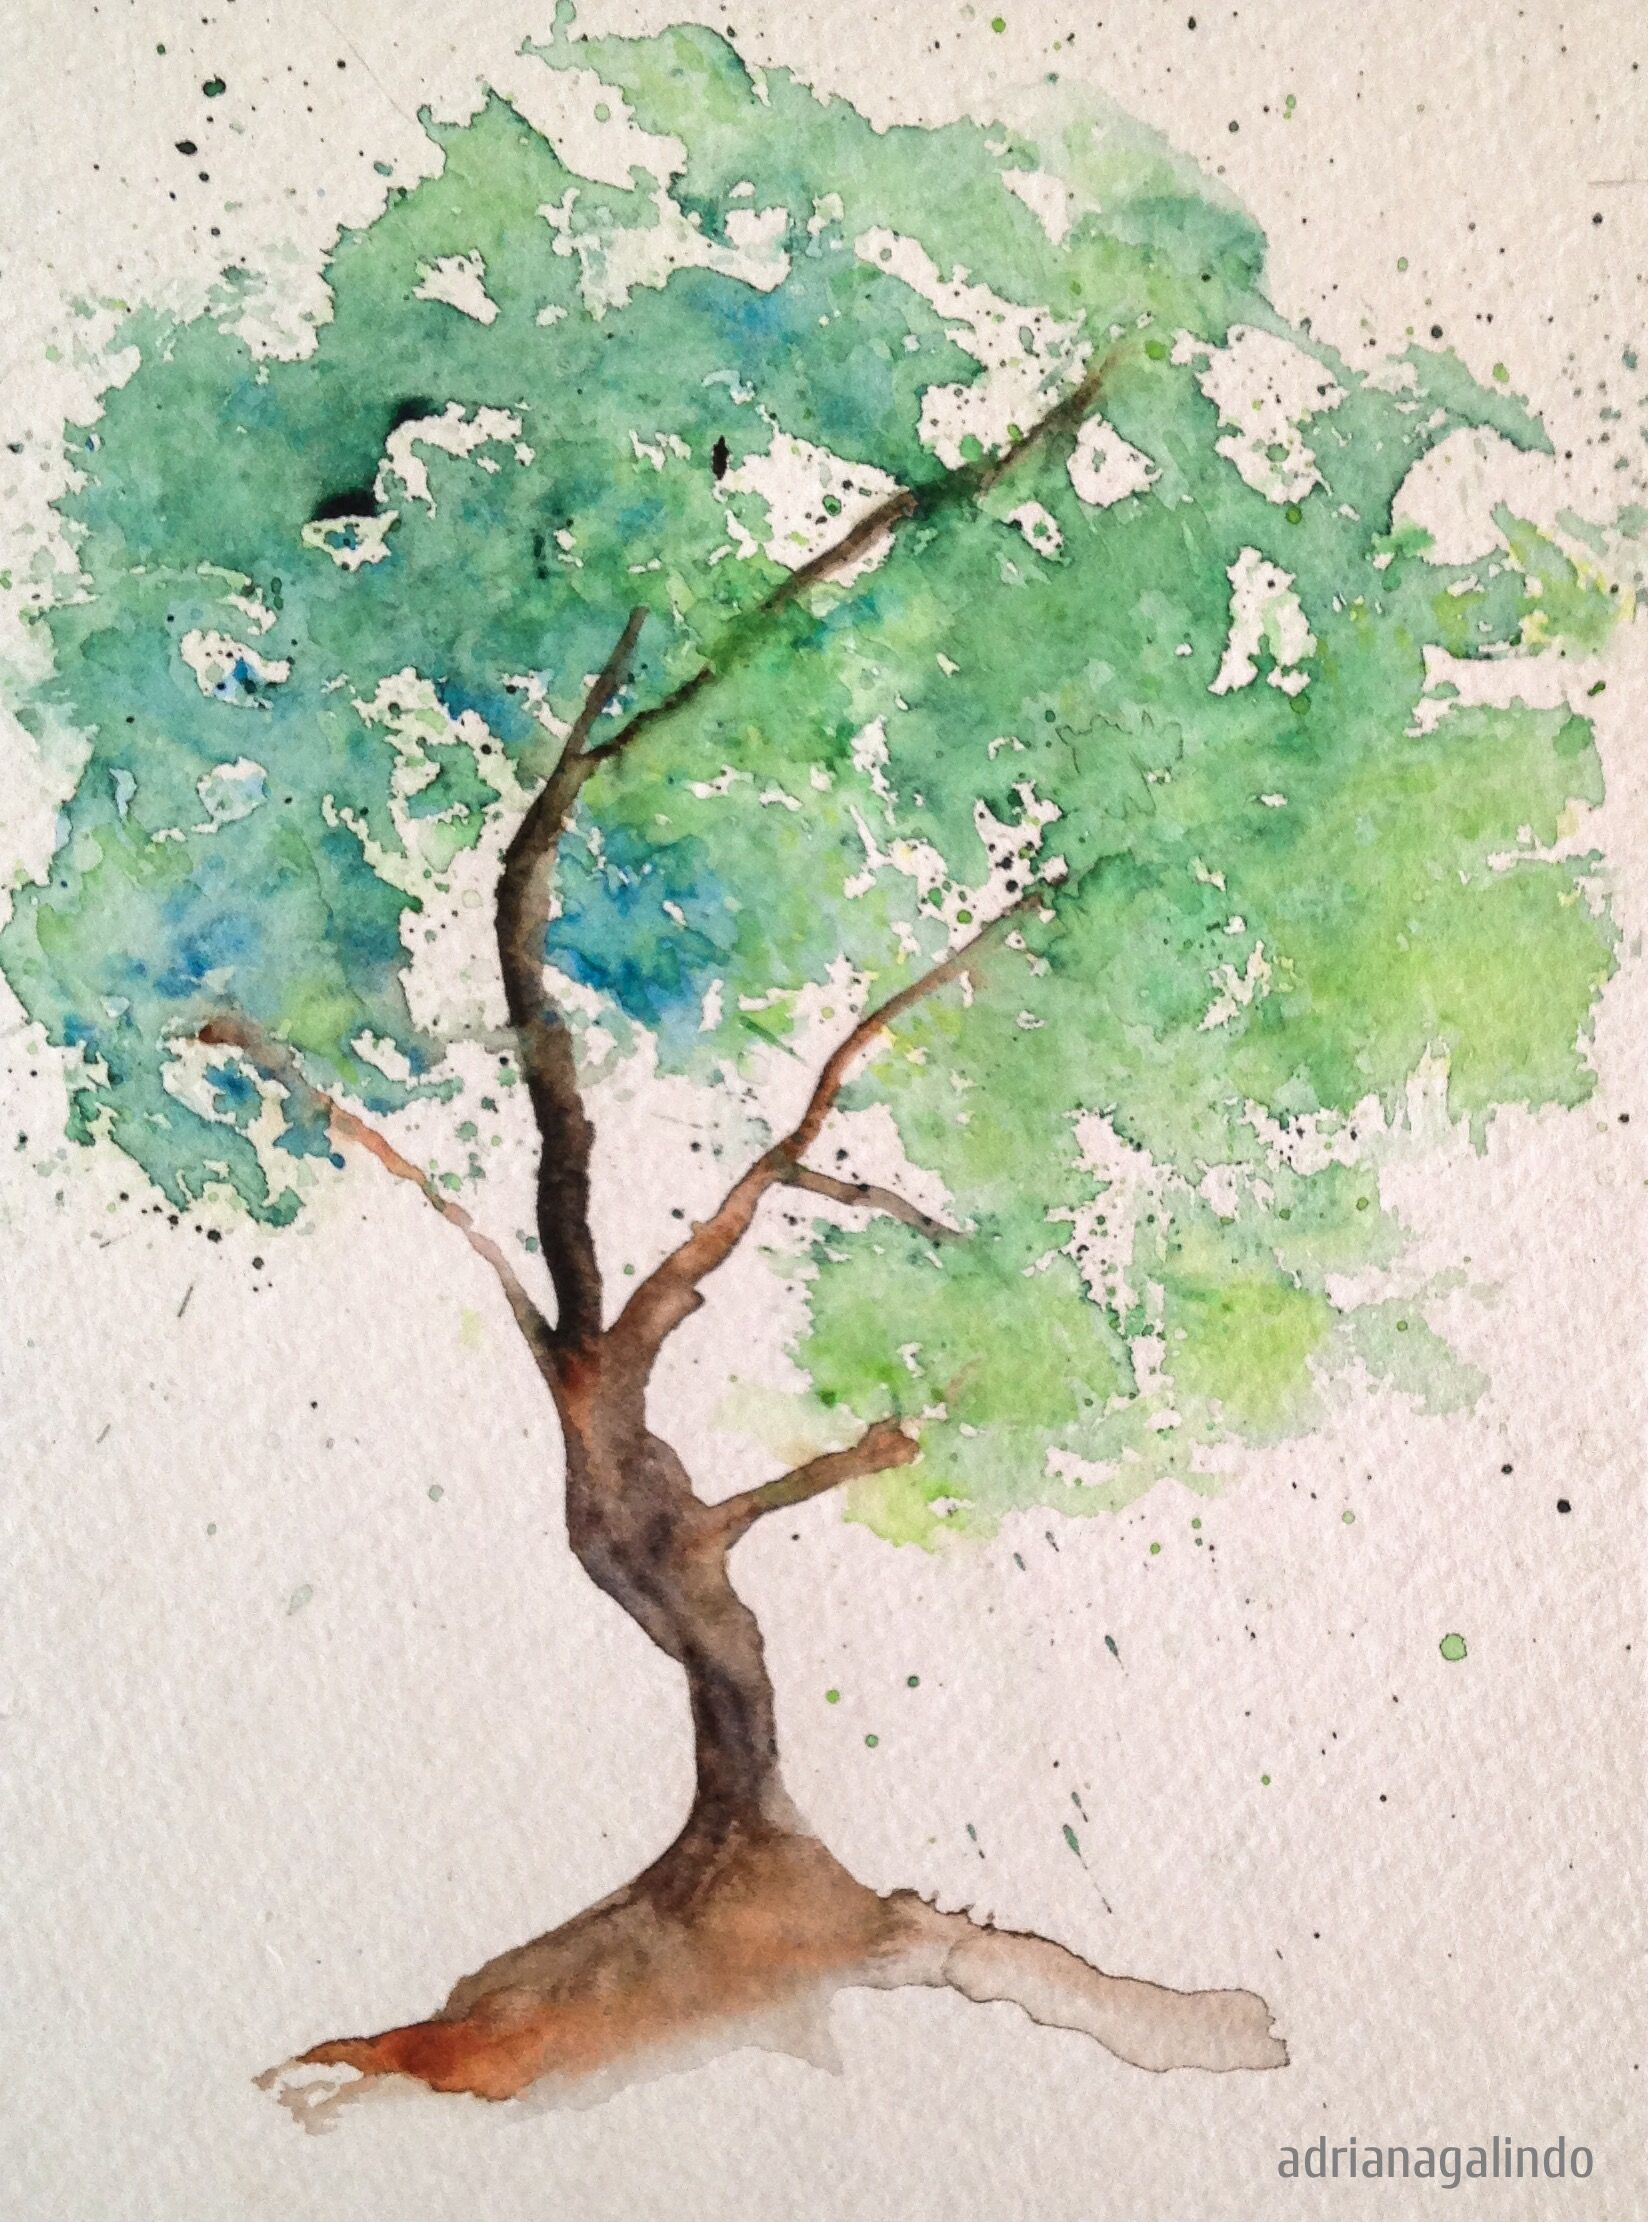 Pin by Art Online on Watercolor Arts   Pinterest   Watercolor, 21st ...